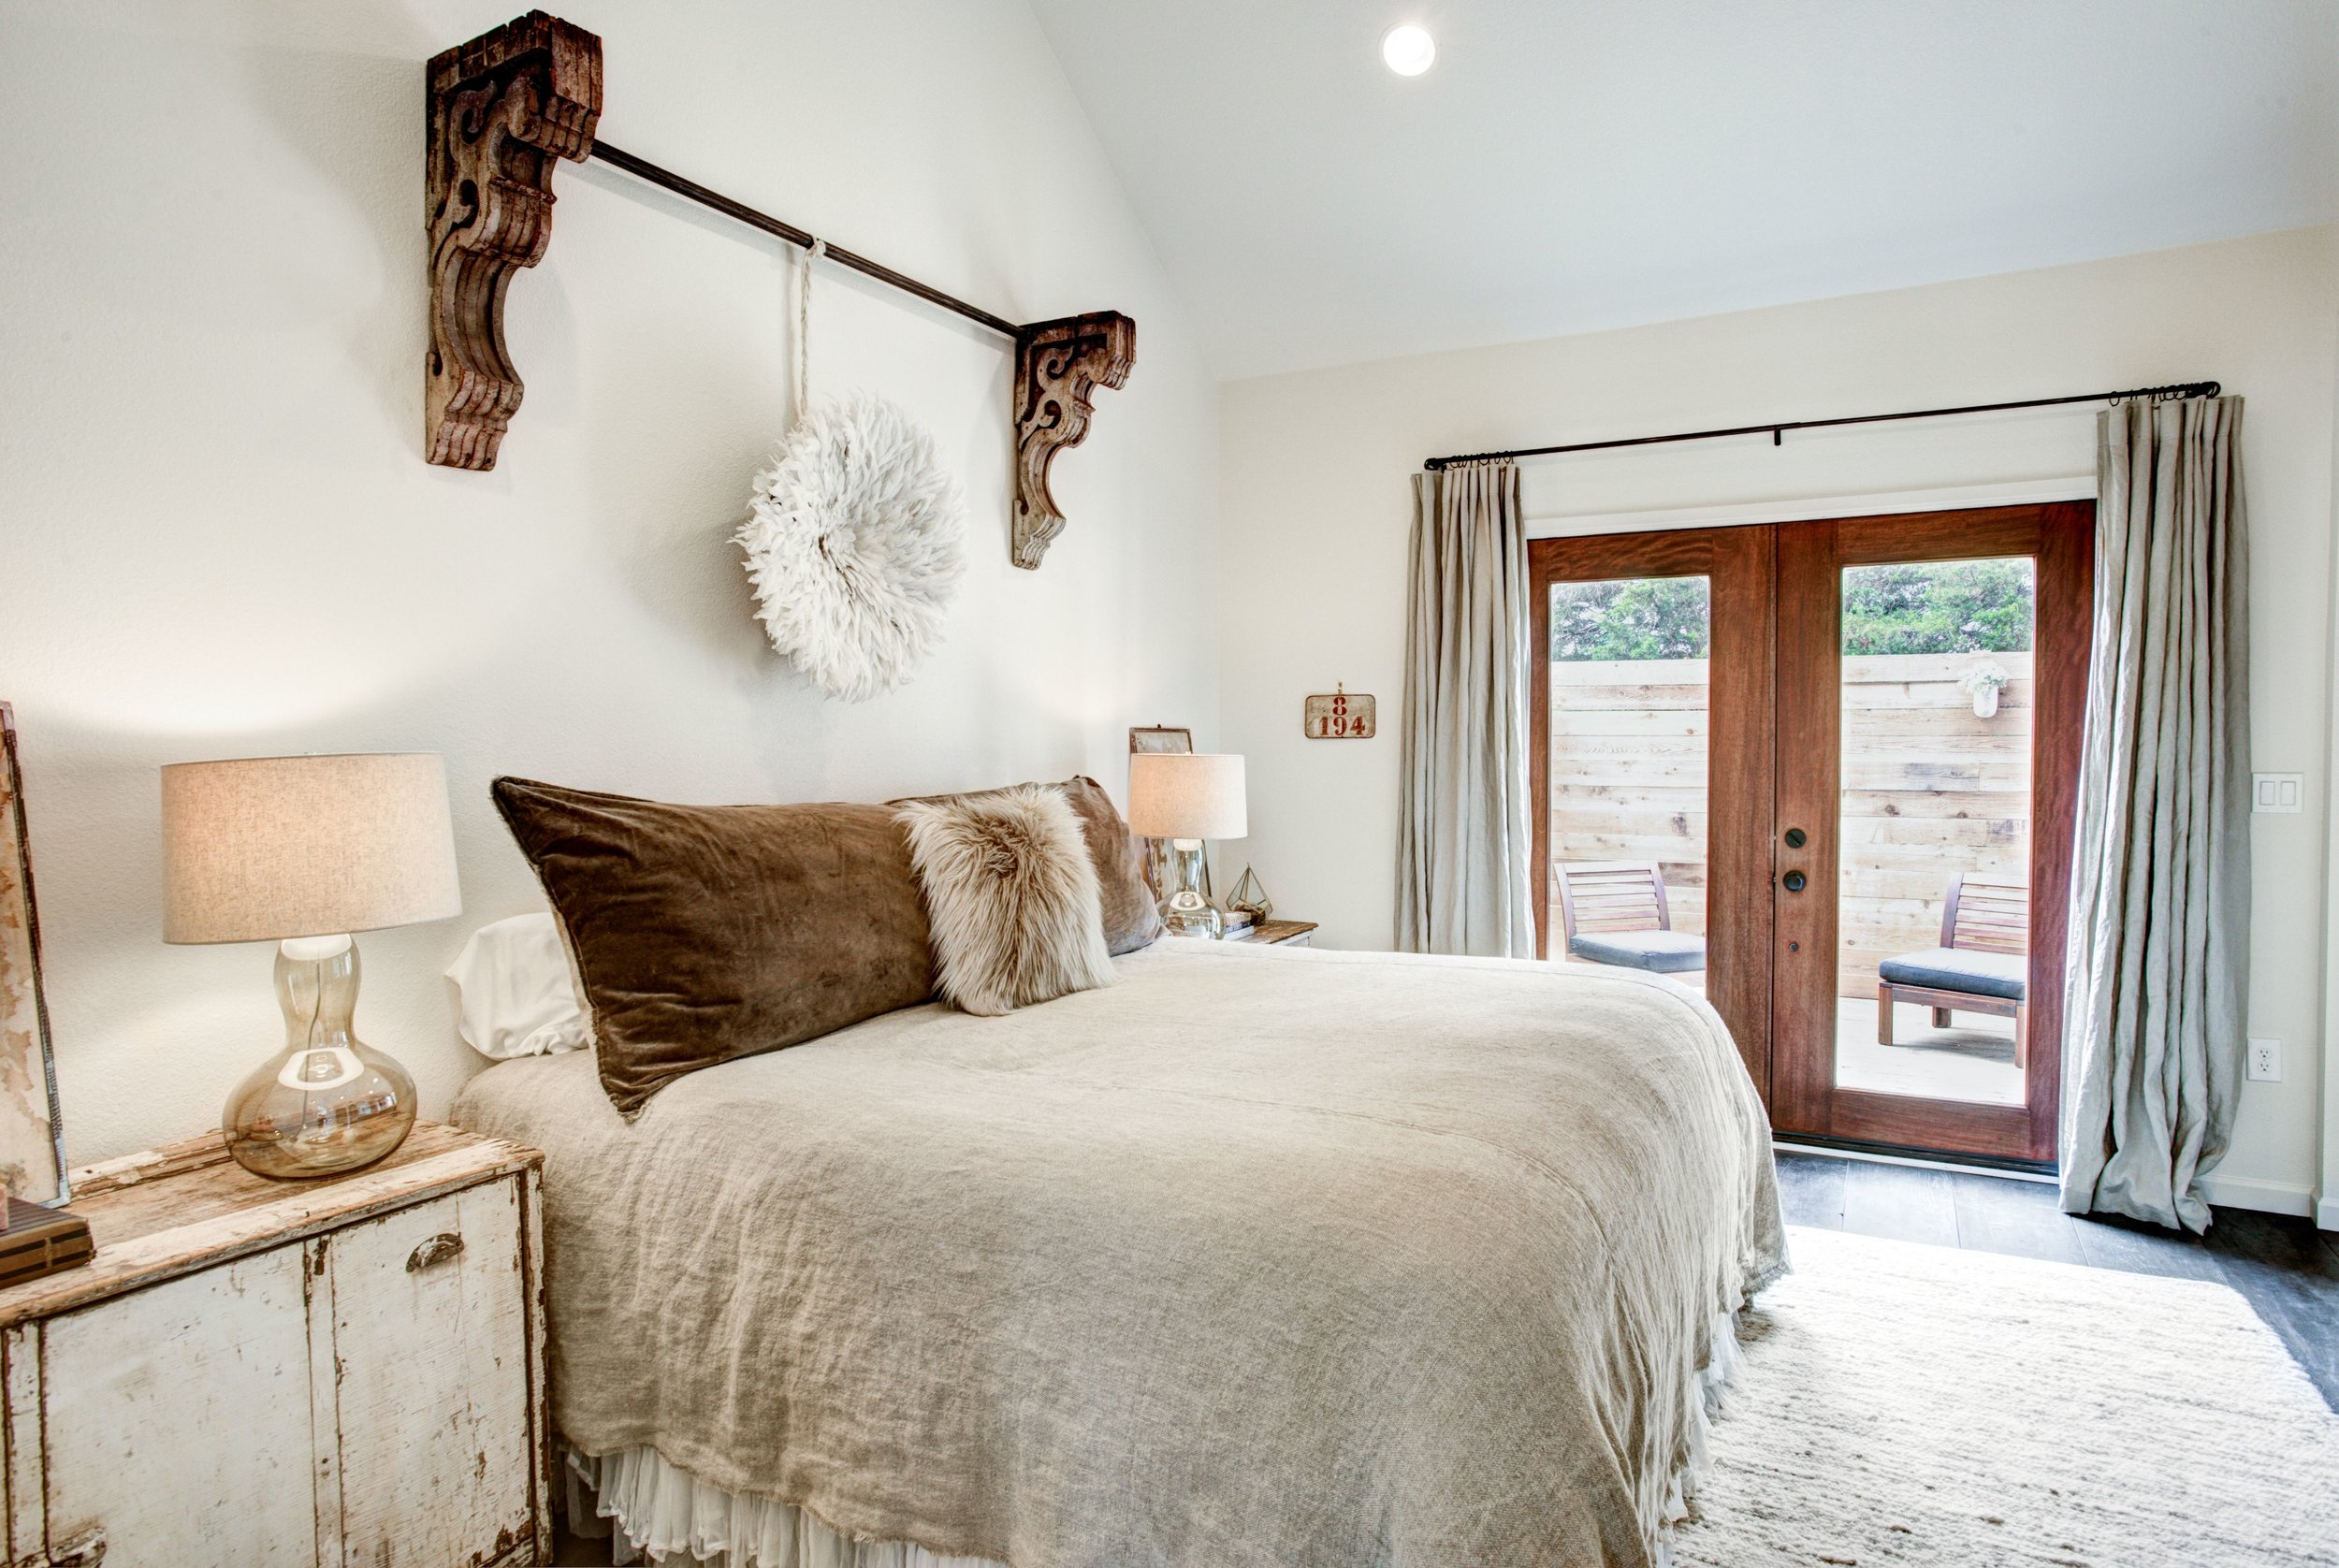 The Boho master bedroom features a king-sized bed, ensuite full bath with soaking tub and separate shower, and a private ensuite patio.